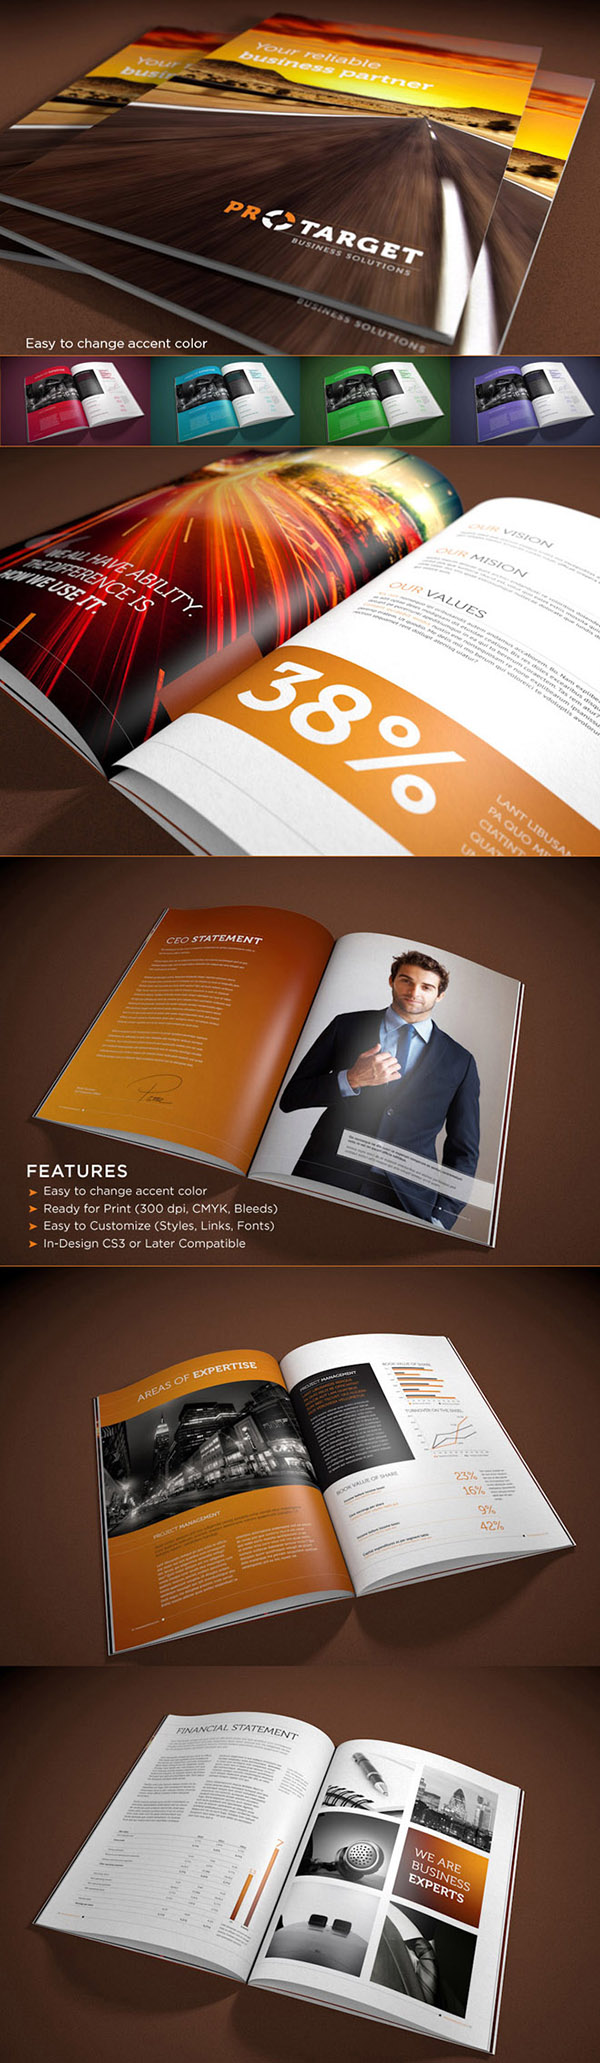 16-corporate-brochure-design-24